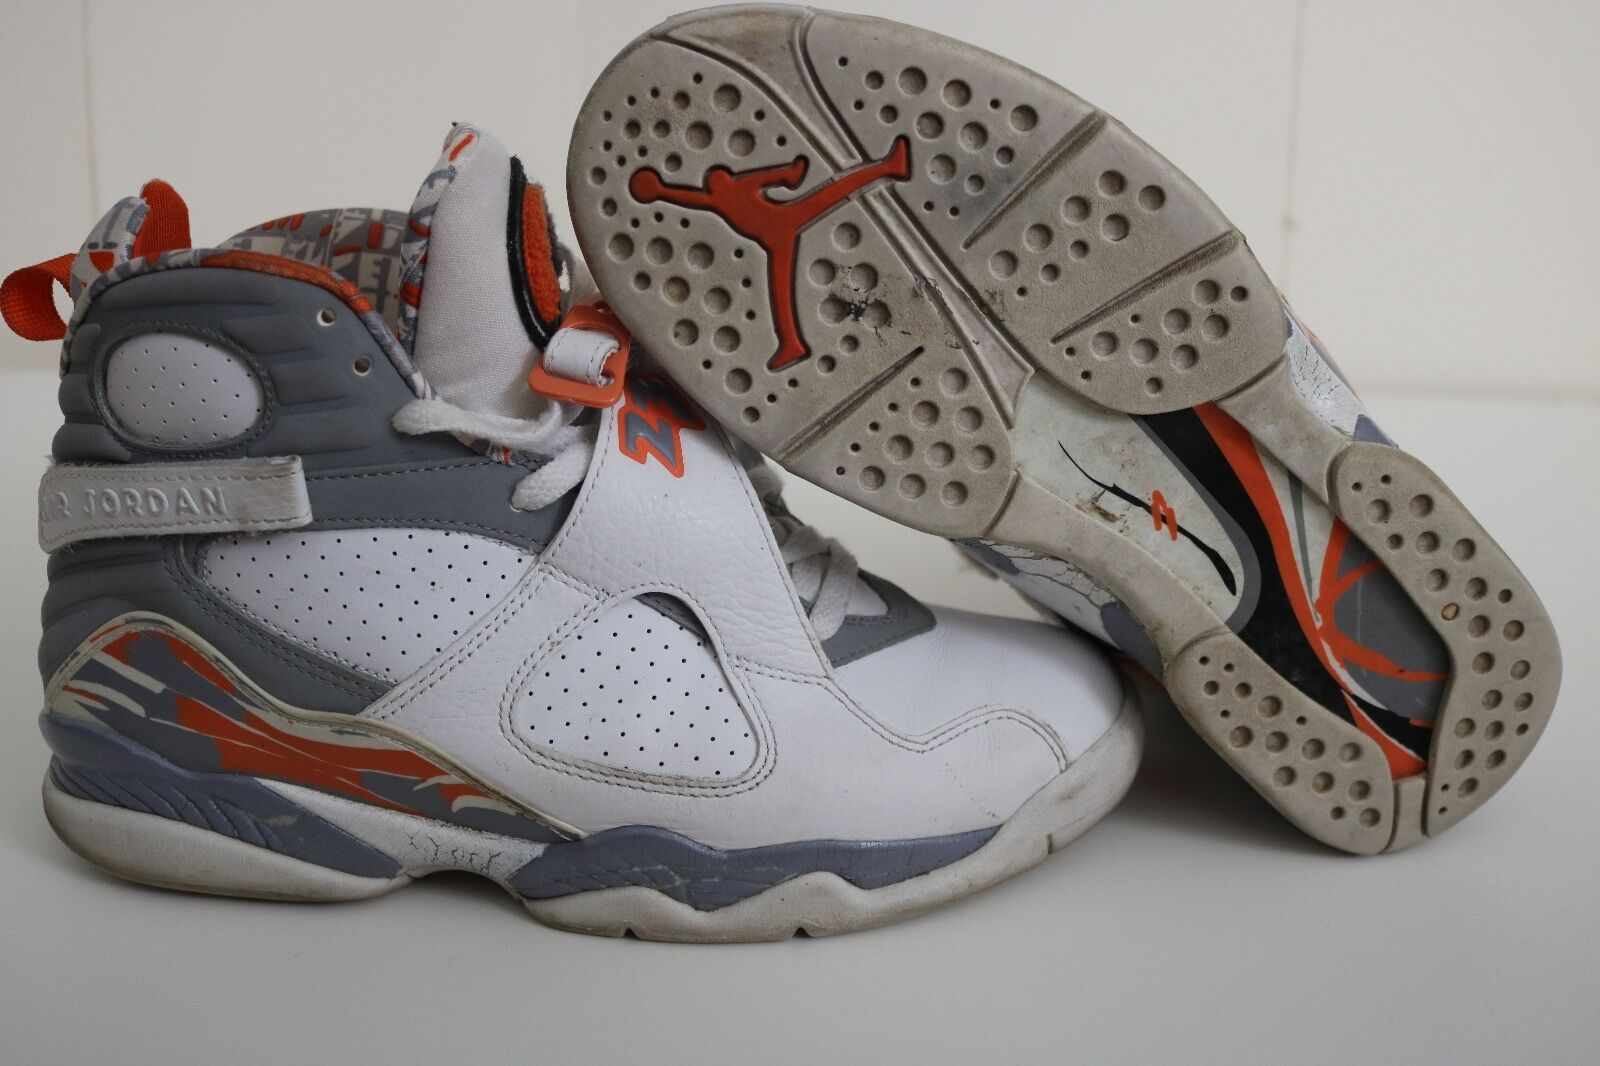 Air jordan 8 Retro size 8.5 best-selling model of the brand